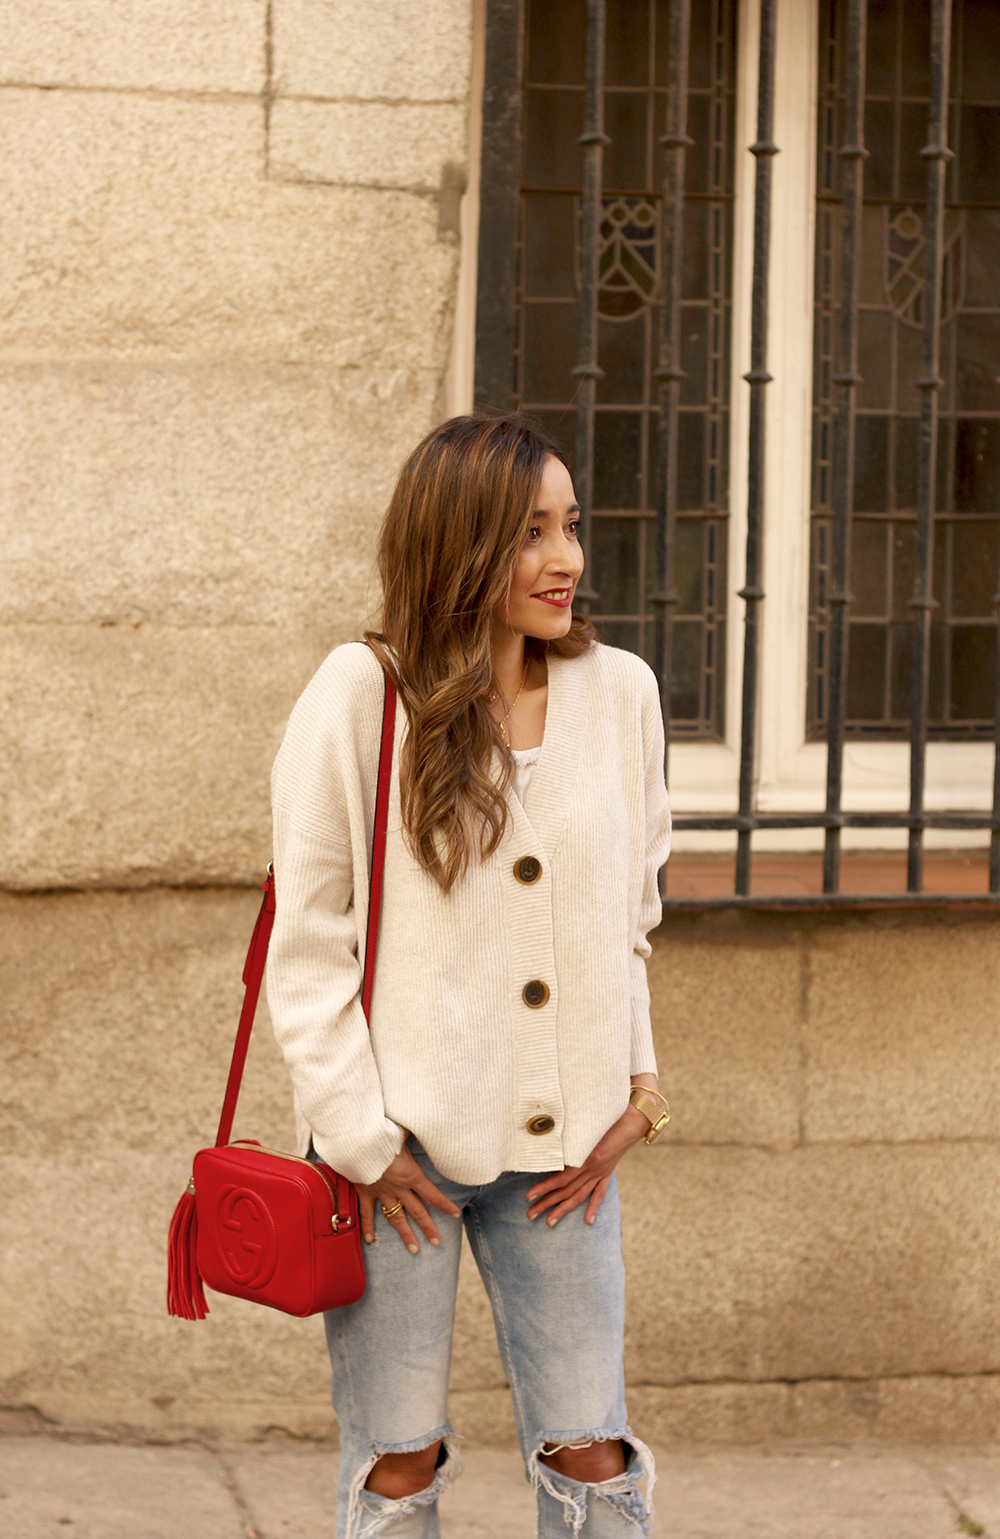 beige cardigan gucci bag red heels ripped jeans street style outfit 201914